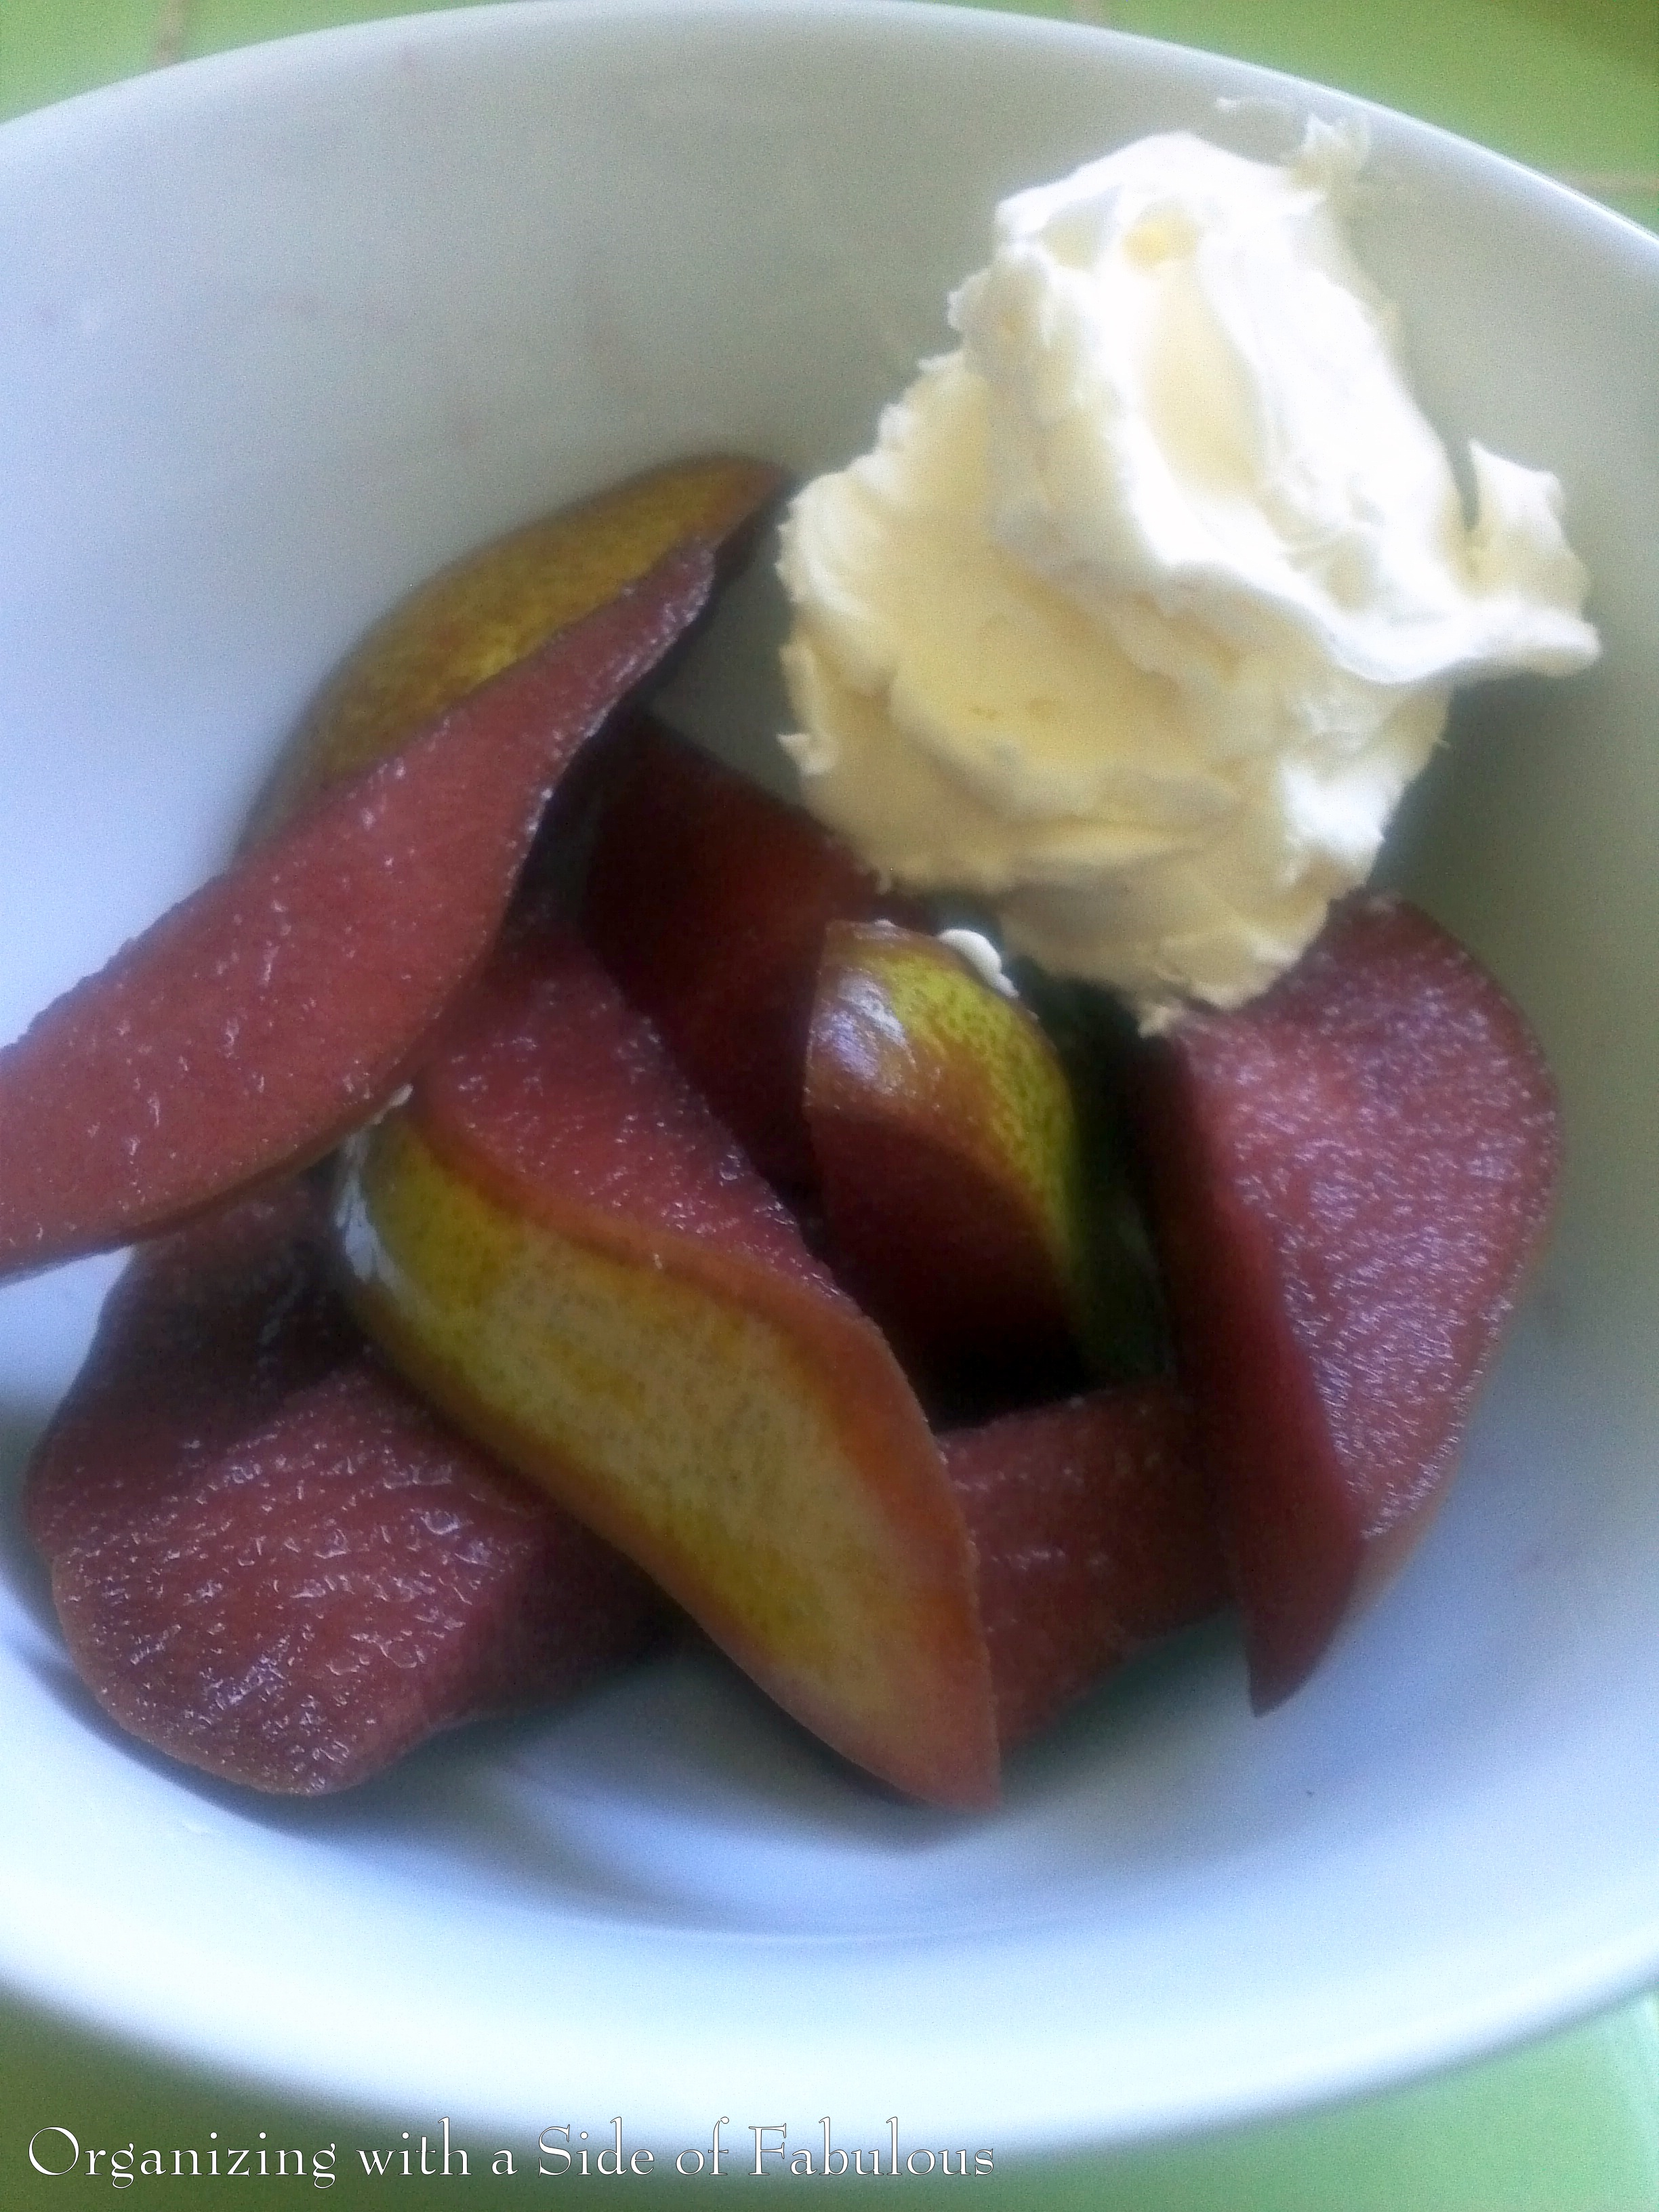 Red wine marinated pears with homemade whipped cream - Organizing with a Side of Fabulous